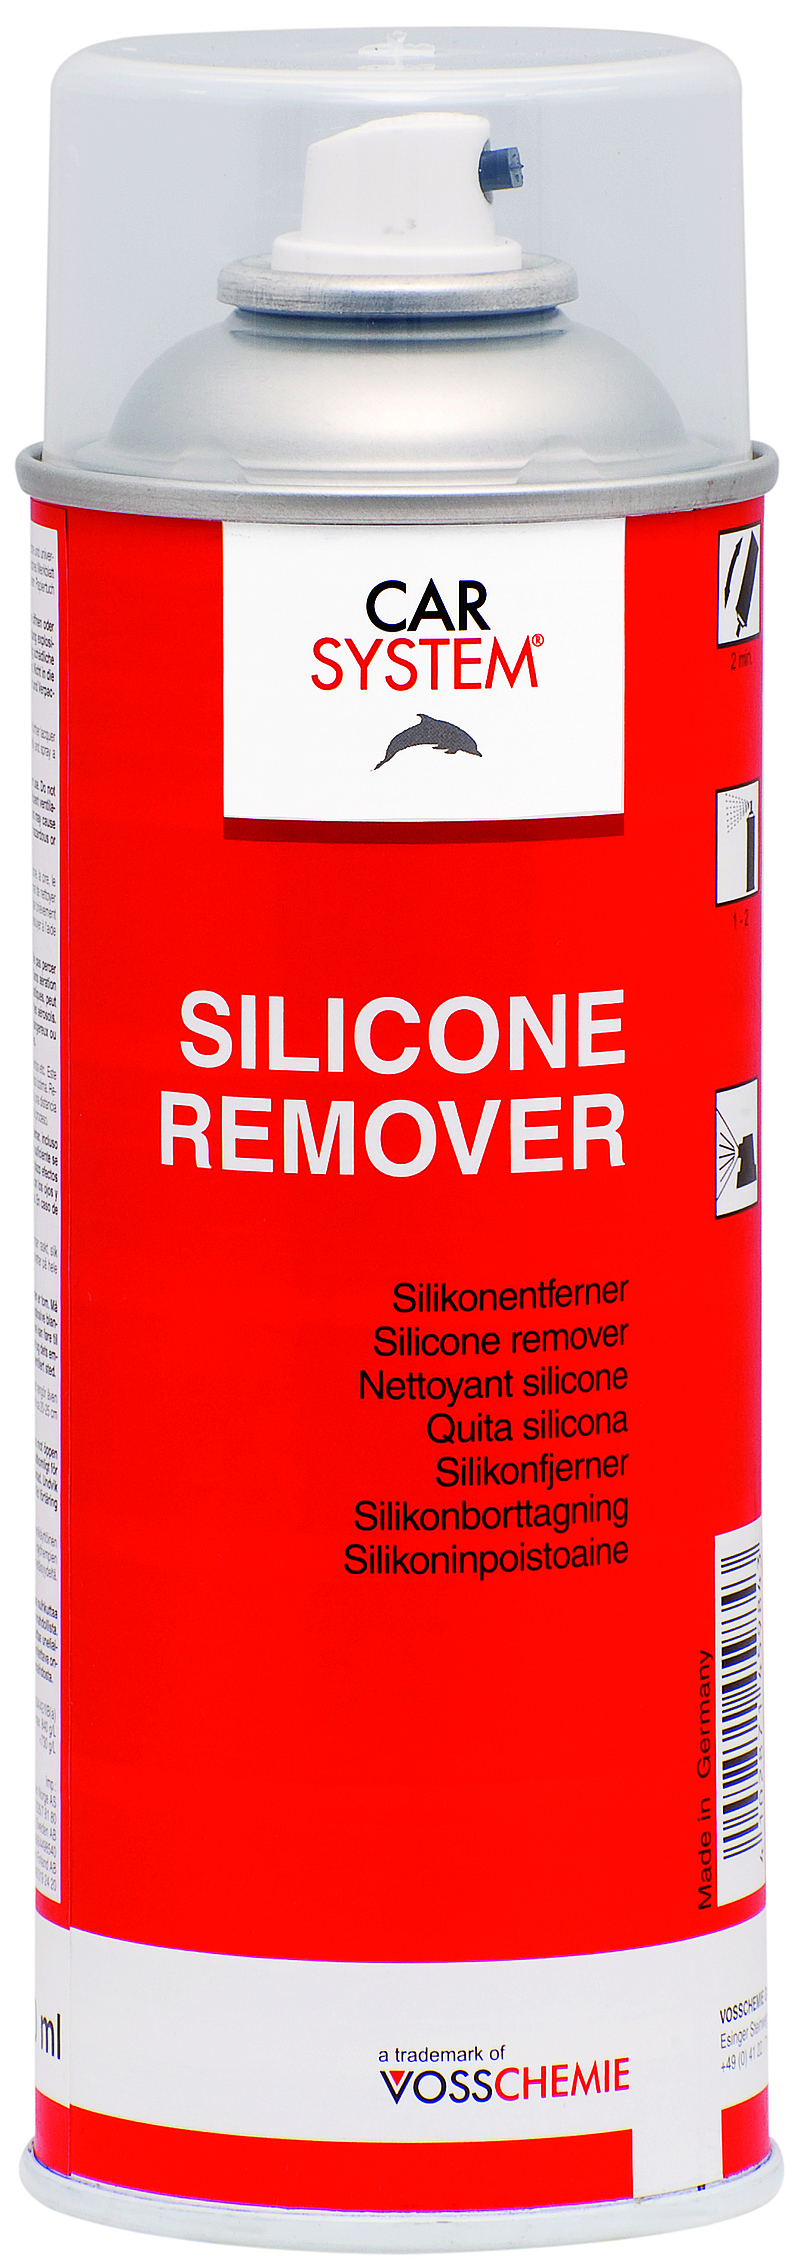 Siliconen Remover Spray 400ml.